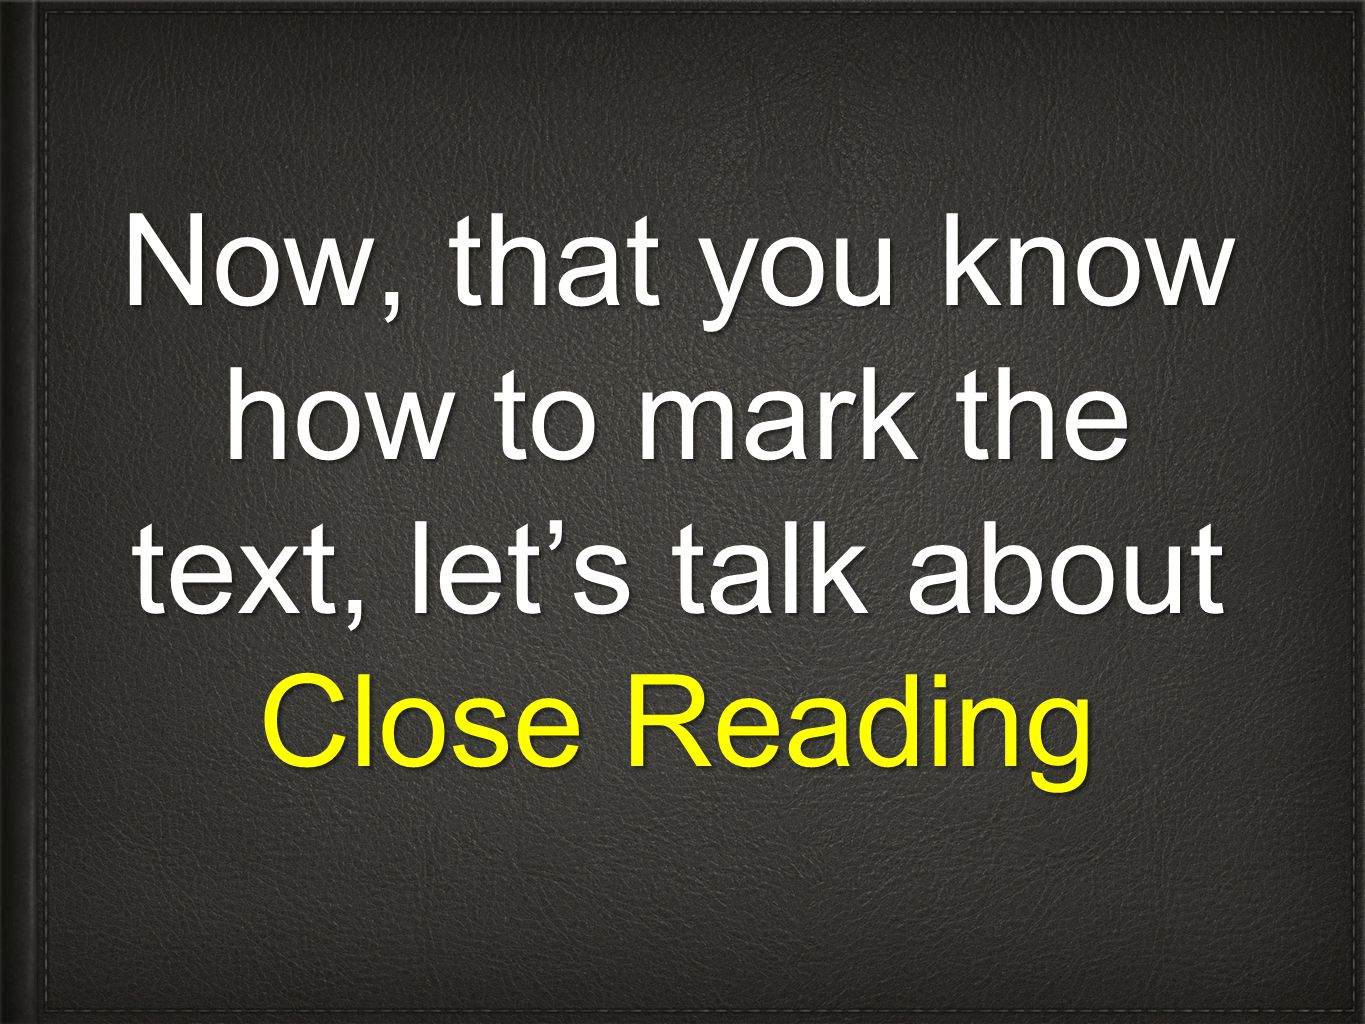 Now, that you know how to mark the text, let's talk about Close Reading